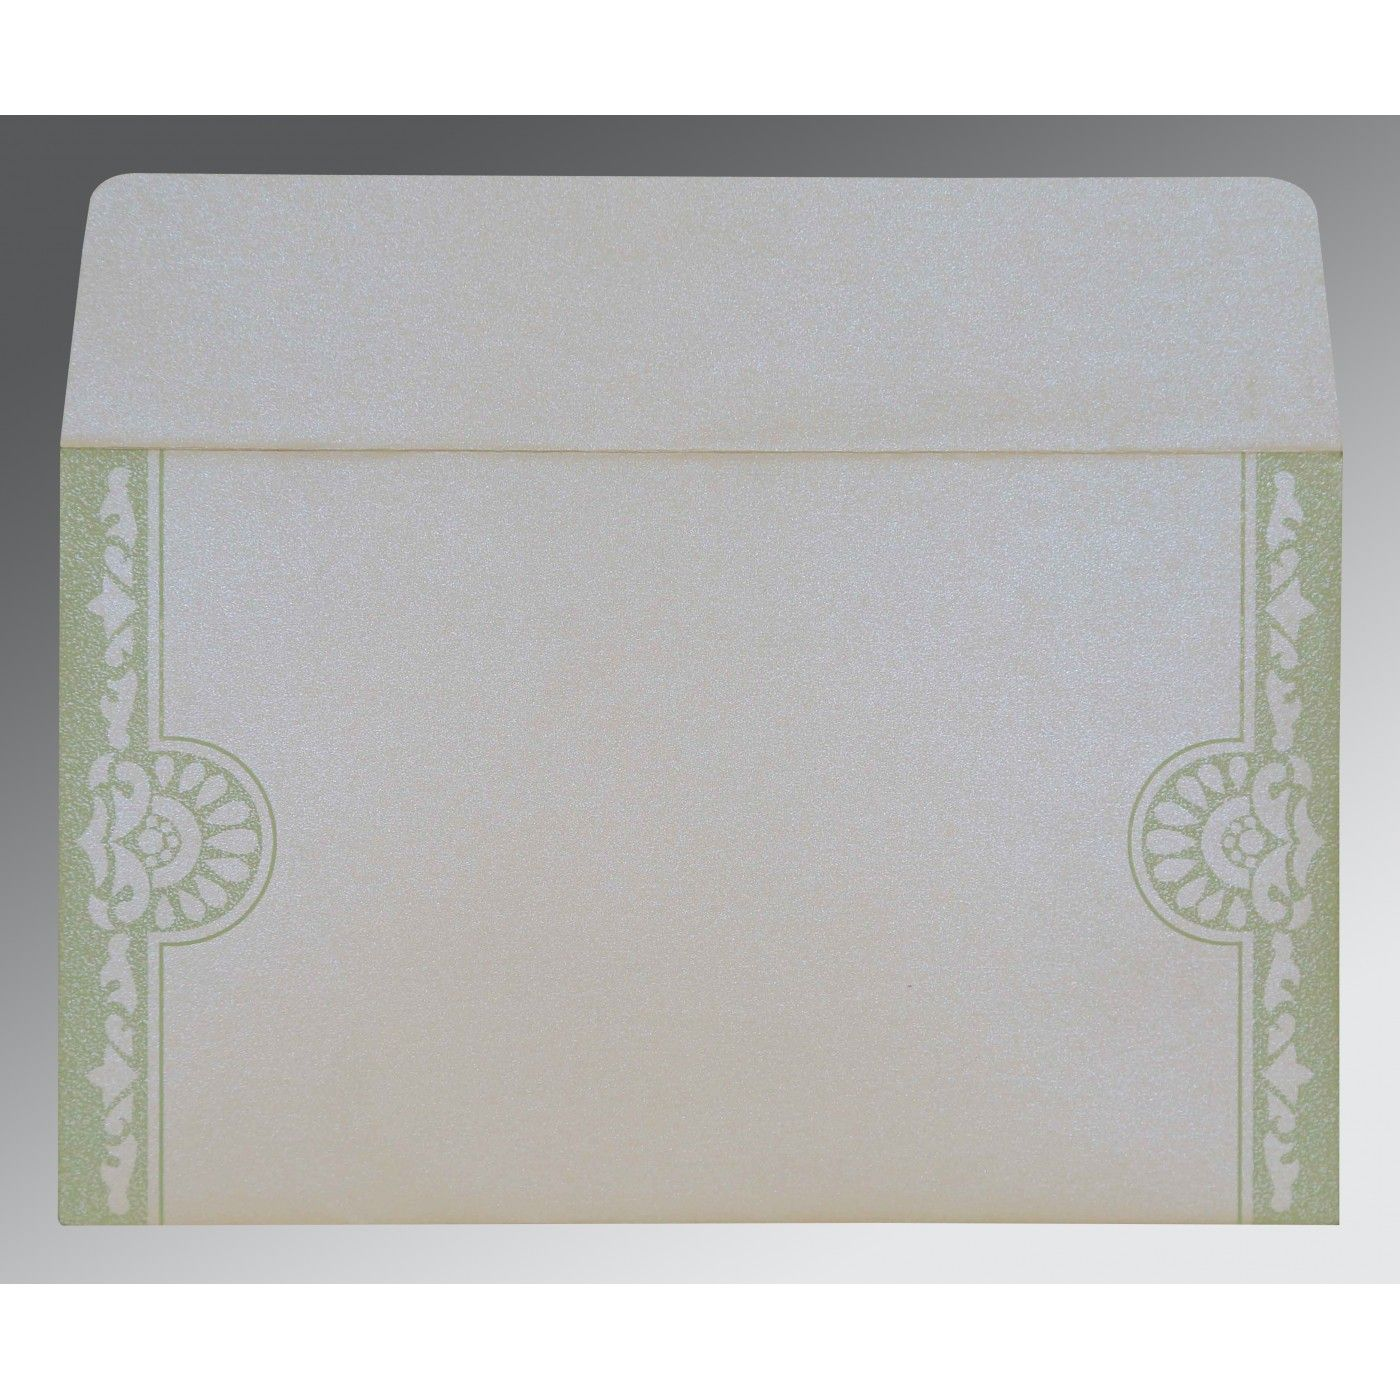 OFF-WHITE SHIMMERY FLORAL THEMED - SCREEN PRINTED WEDDING CARD : CG-8227J - IndianWeddingCards